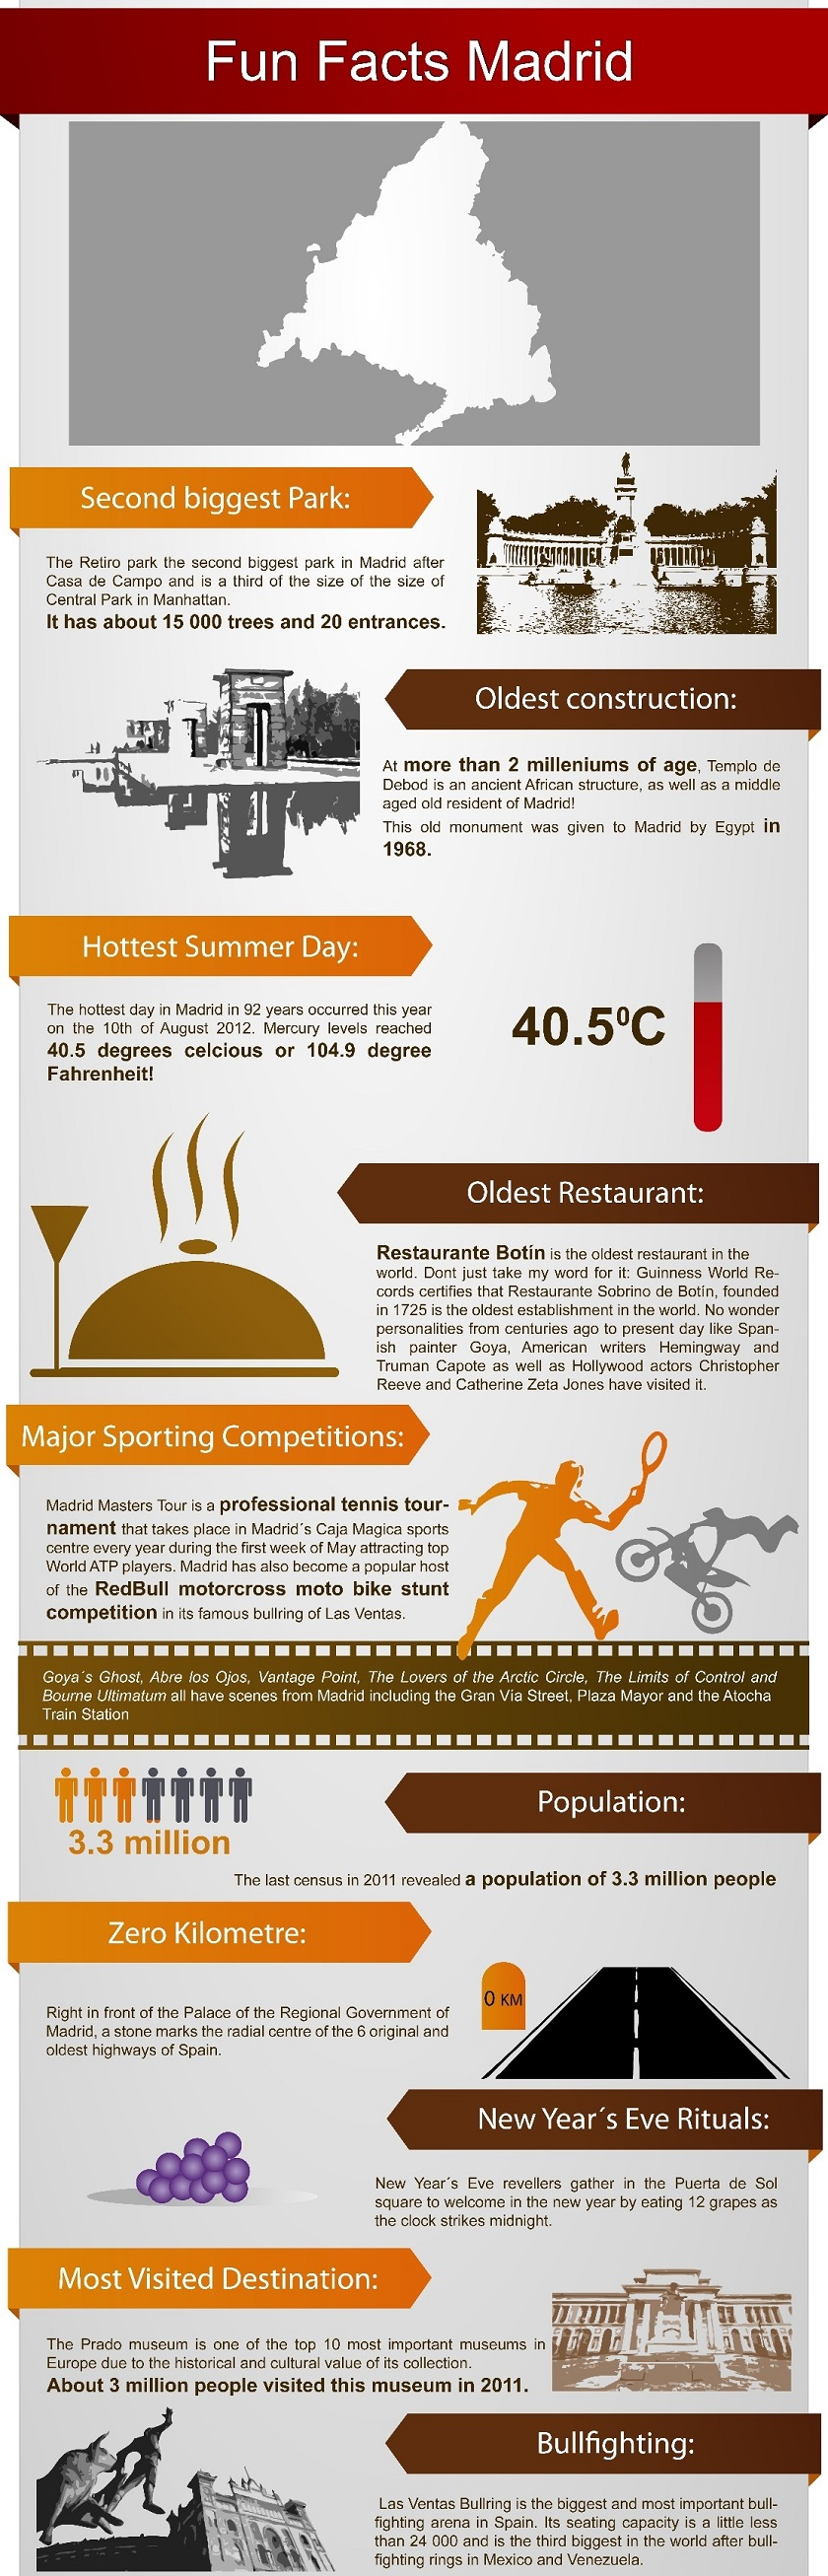 Fun Facts Madrid Infographic